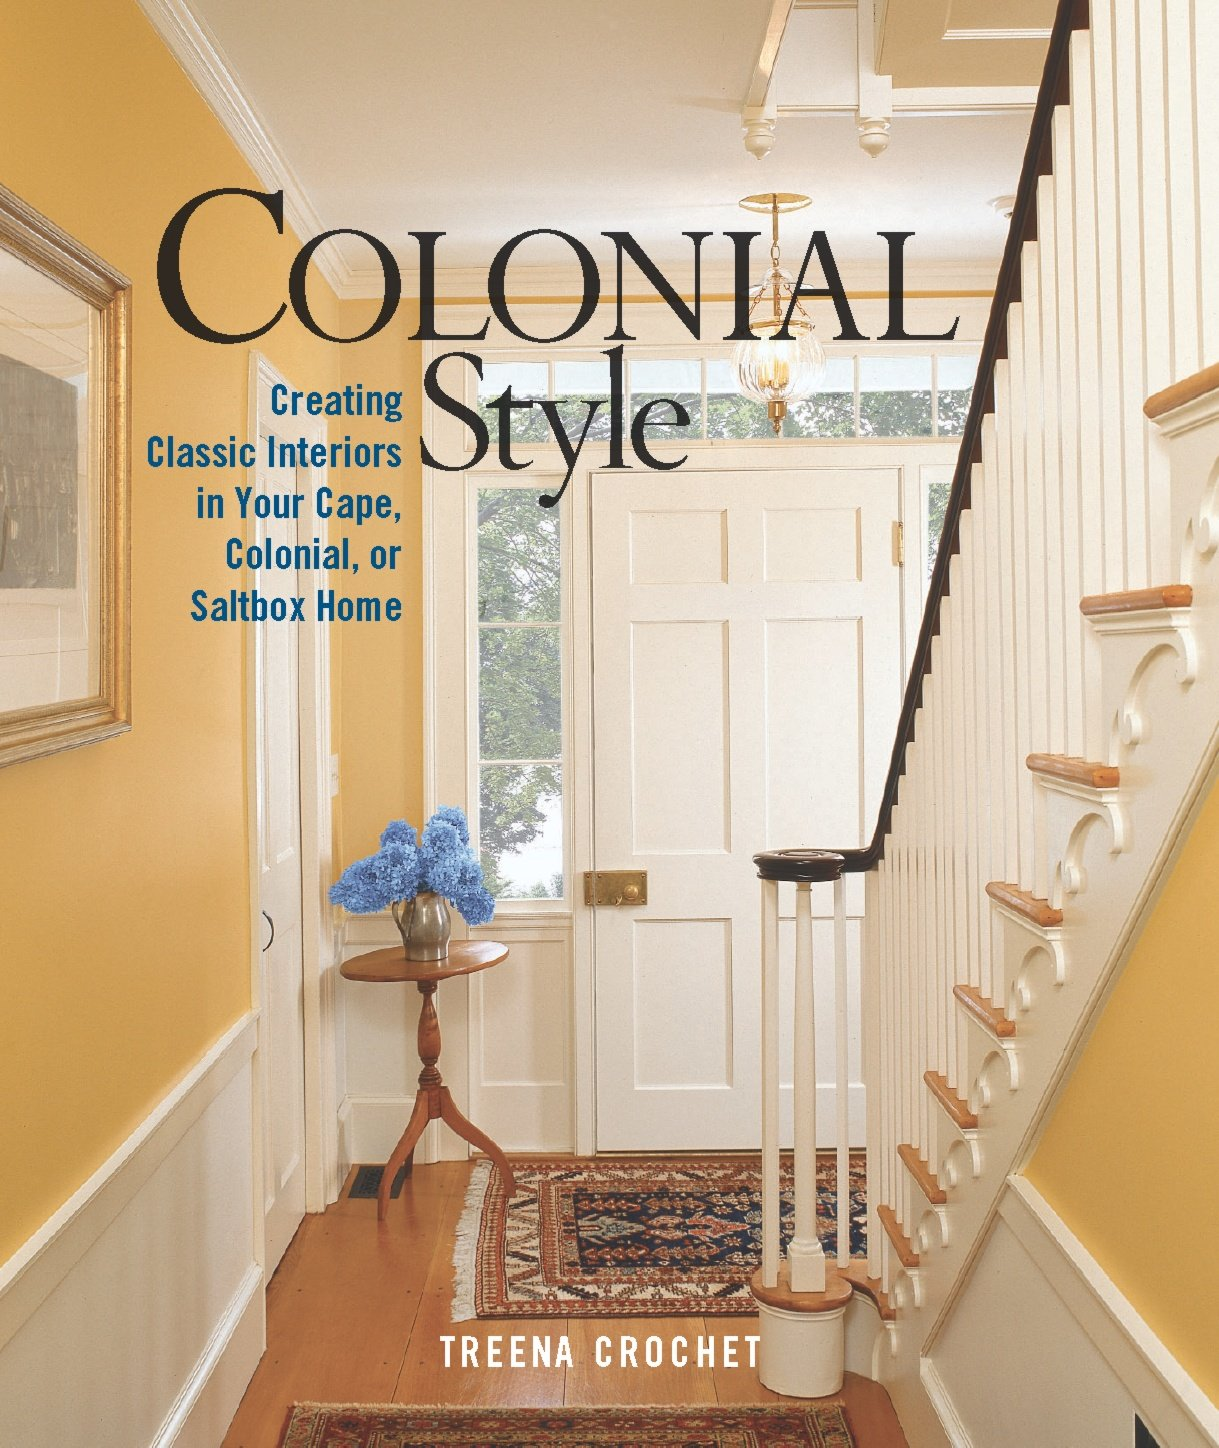 colonial style creating classic interiors in your cape colonial